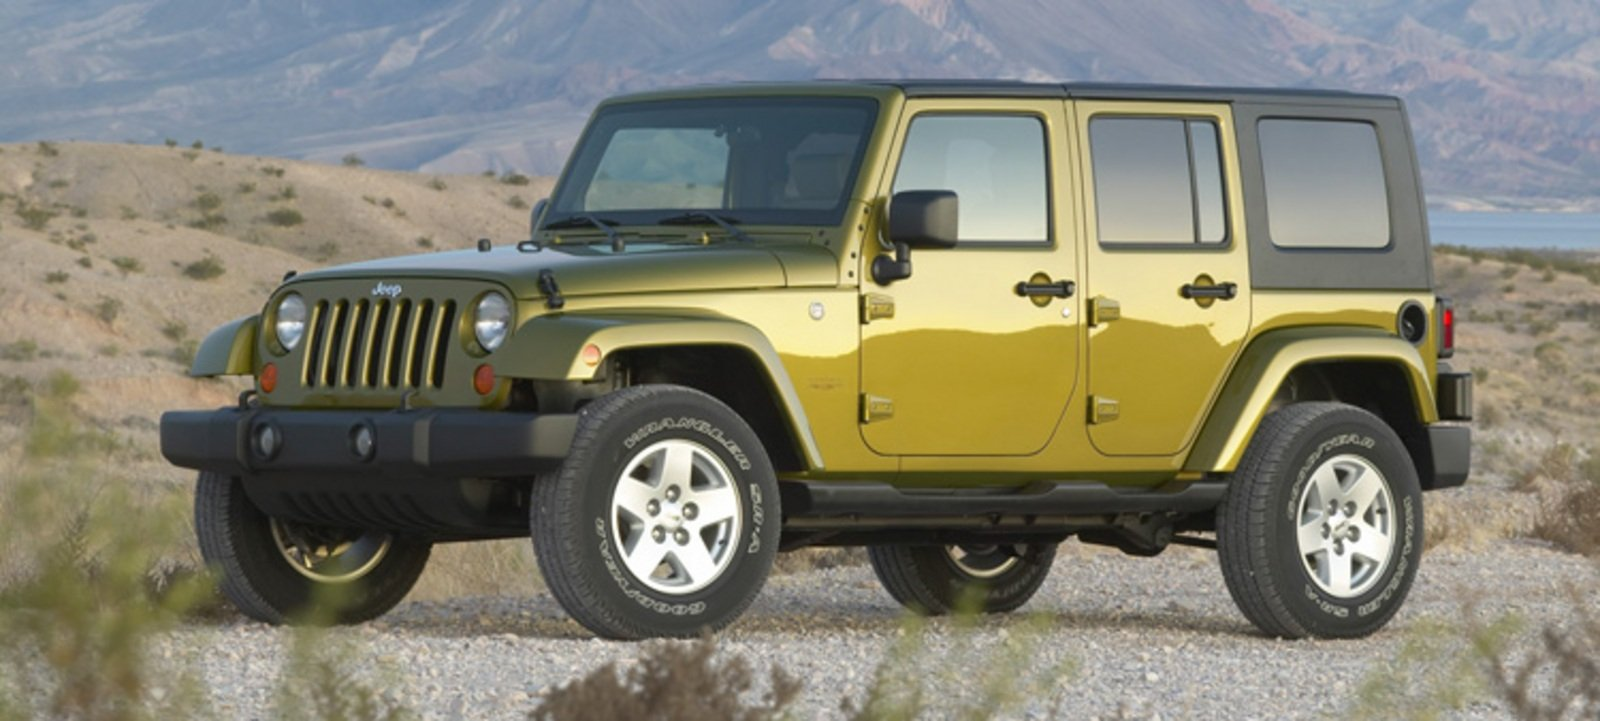 Jeep Wrangler Lease >> Chrysler, Fiat And Tata Possible Partnerships – JEEP FOR SALE? News - Top Speed